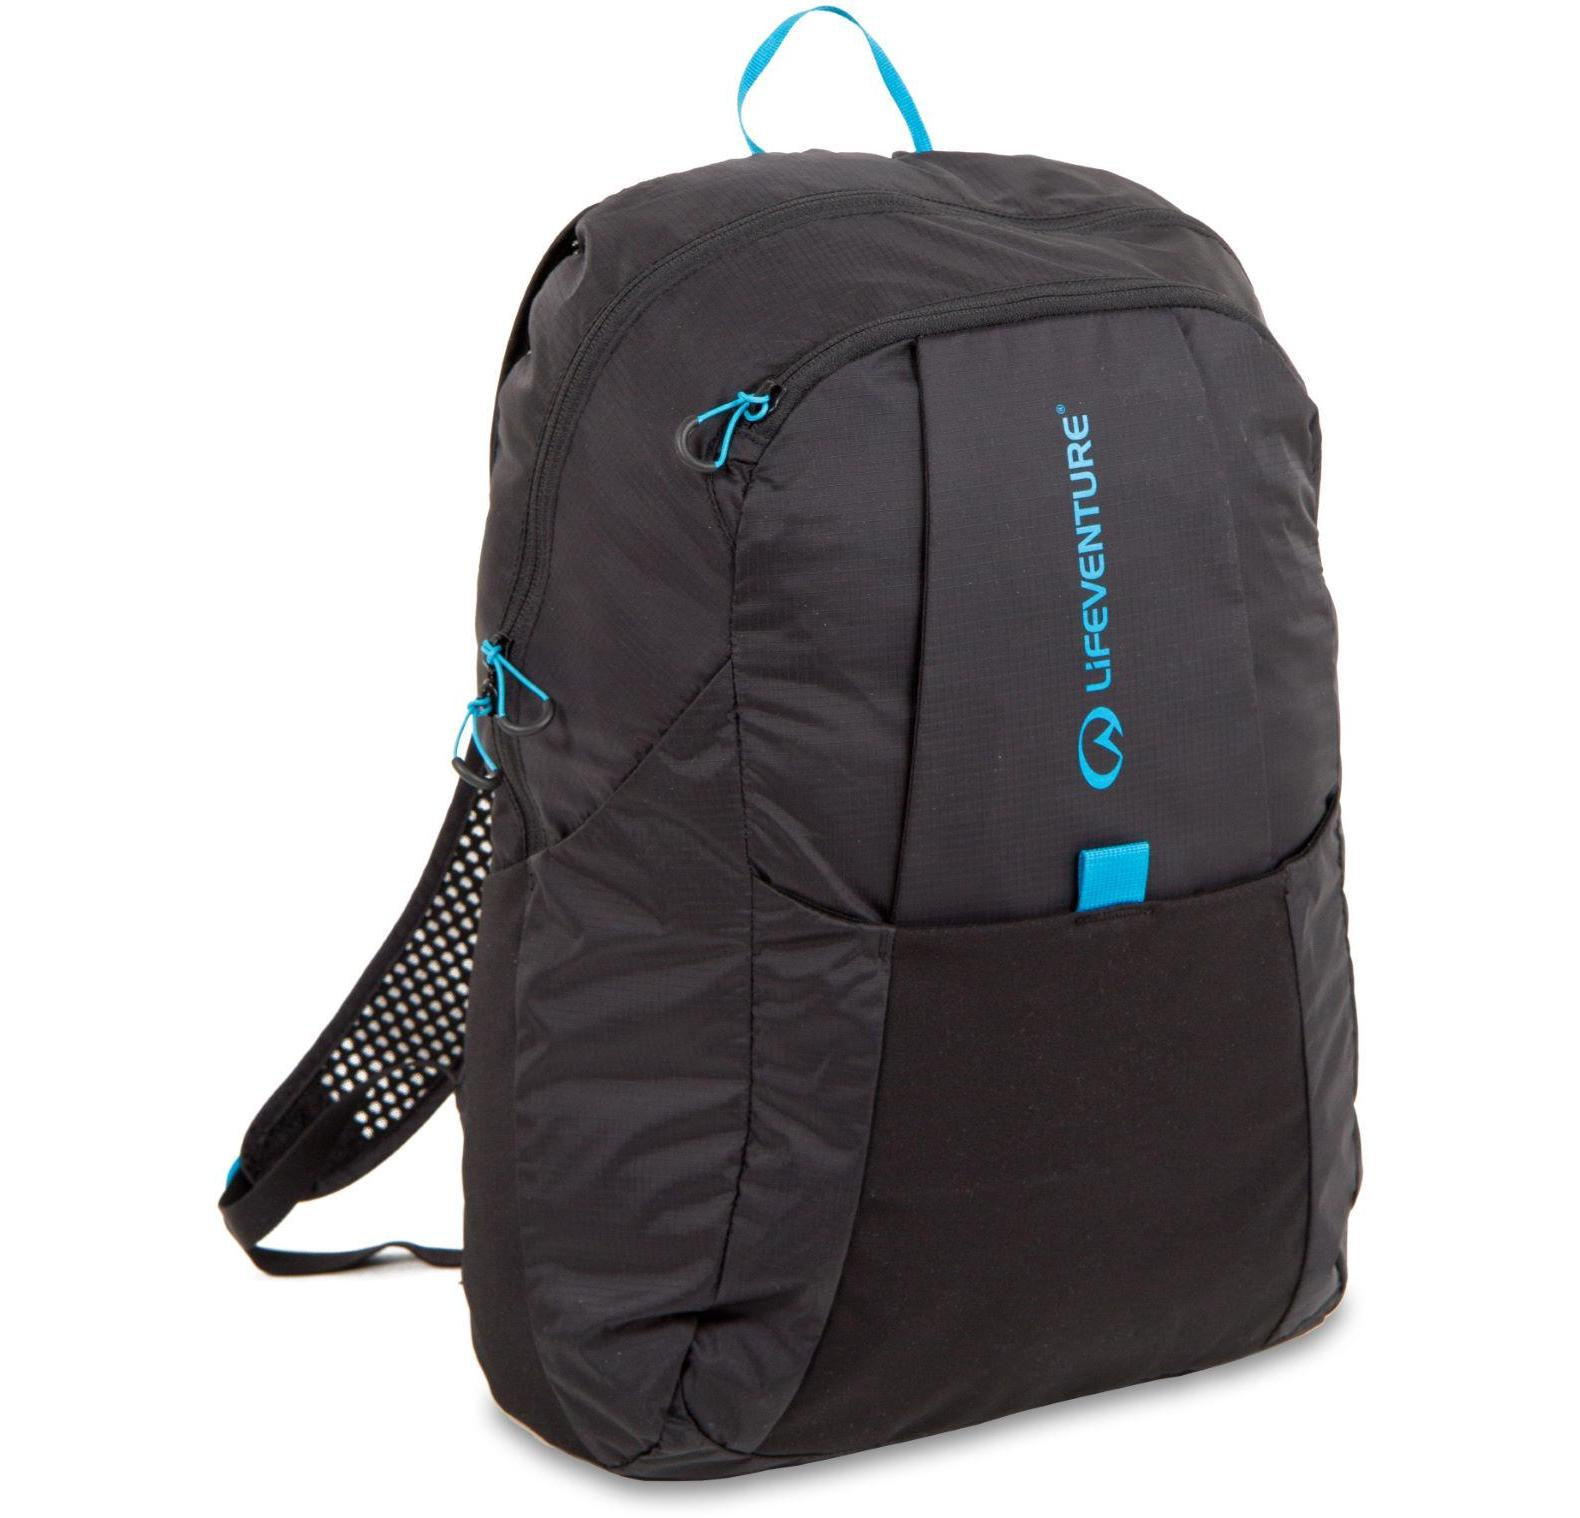 e52ab2cf69b1 X. Lifeventure Travel Light Packable Backpack ...